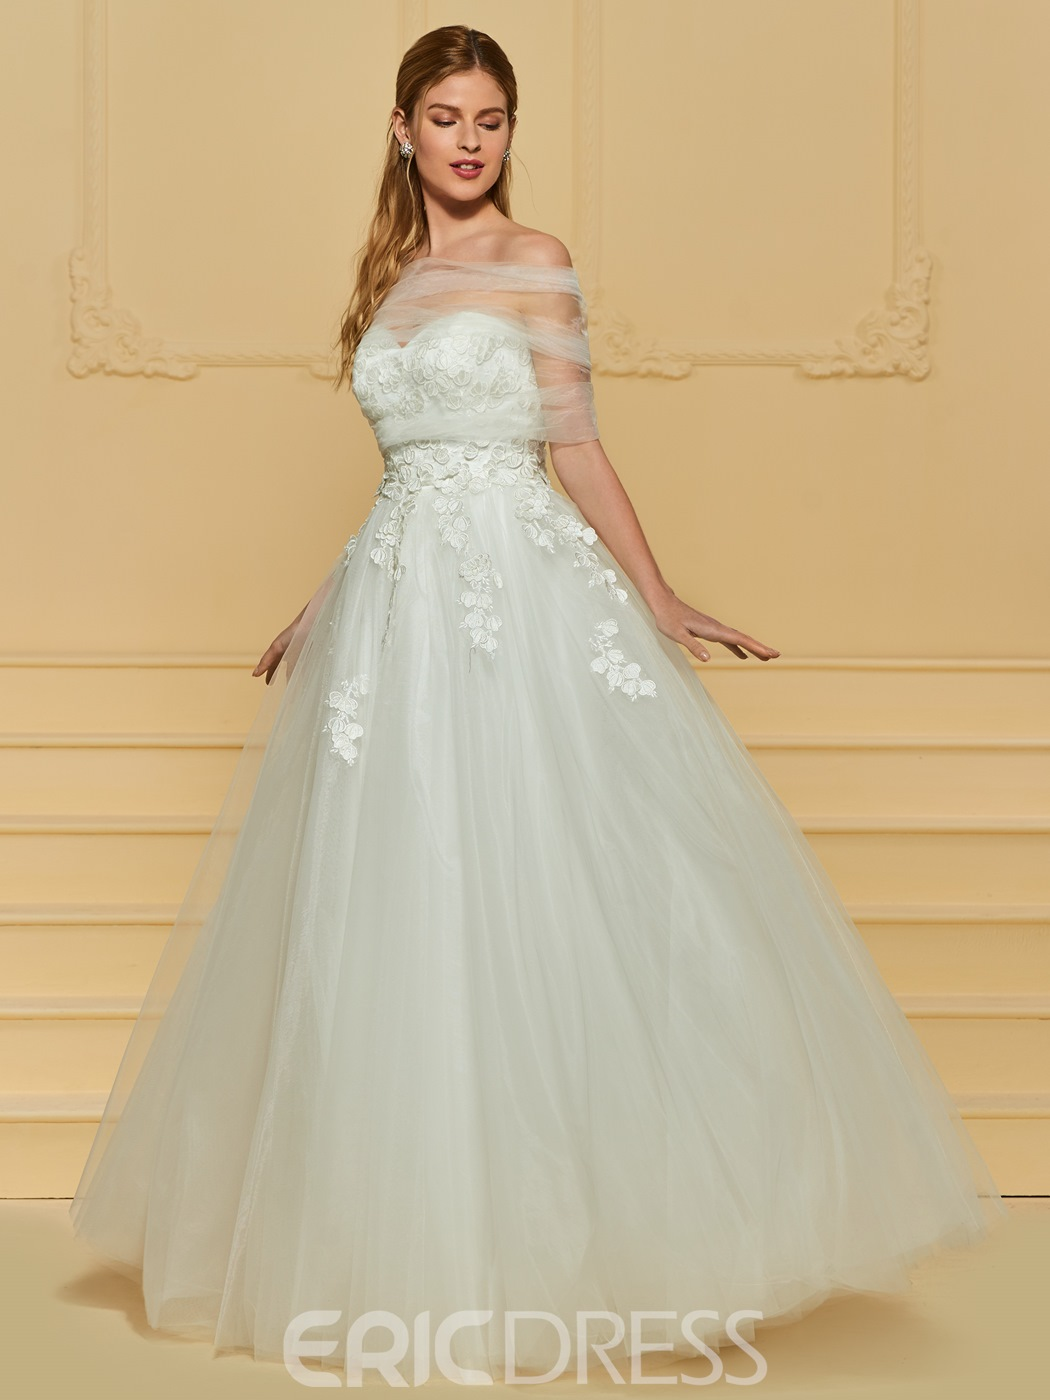 Ericdress Sweetheart Appliques Wedding Dress with Shawl